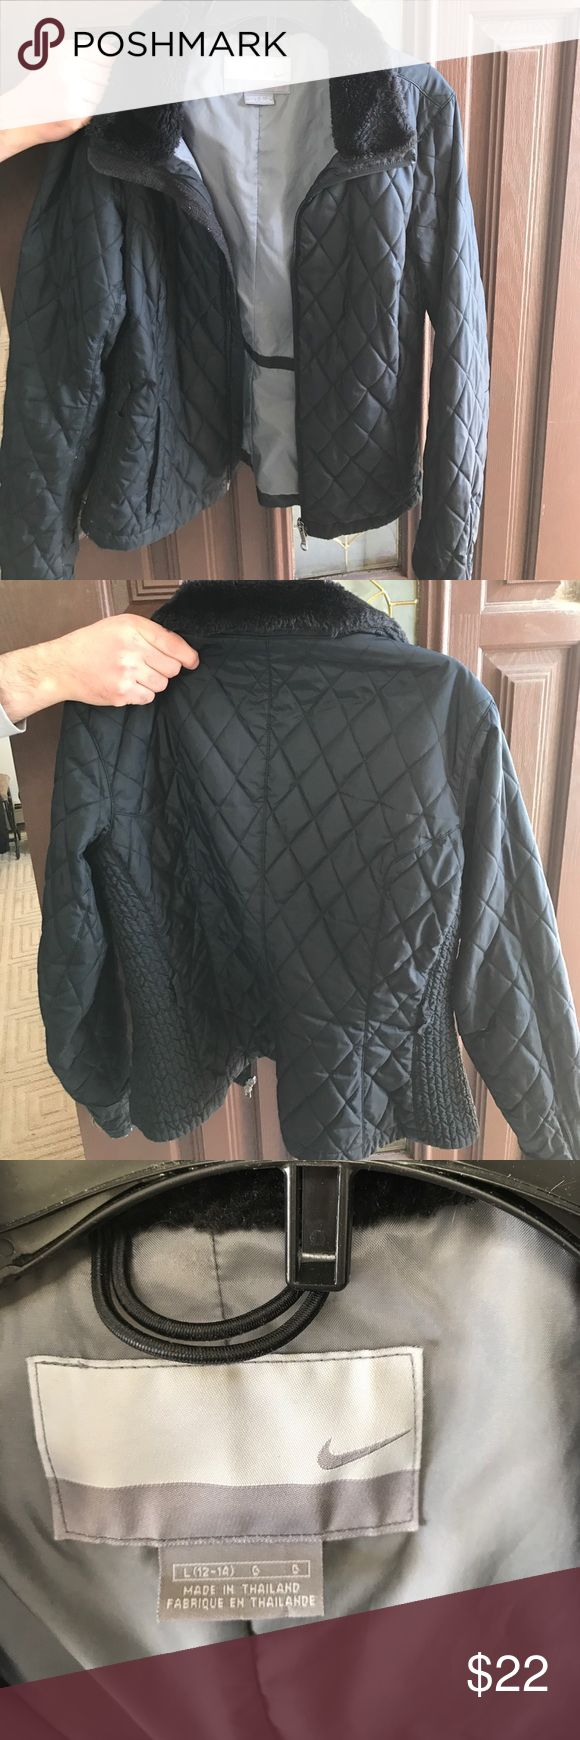 Nike  women's large coat! Size large black zipper quilted Nike coat- size large (12-14) with faux trim collar! Great buy Nike Jackets & Coats